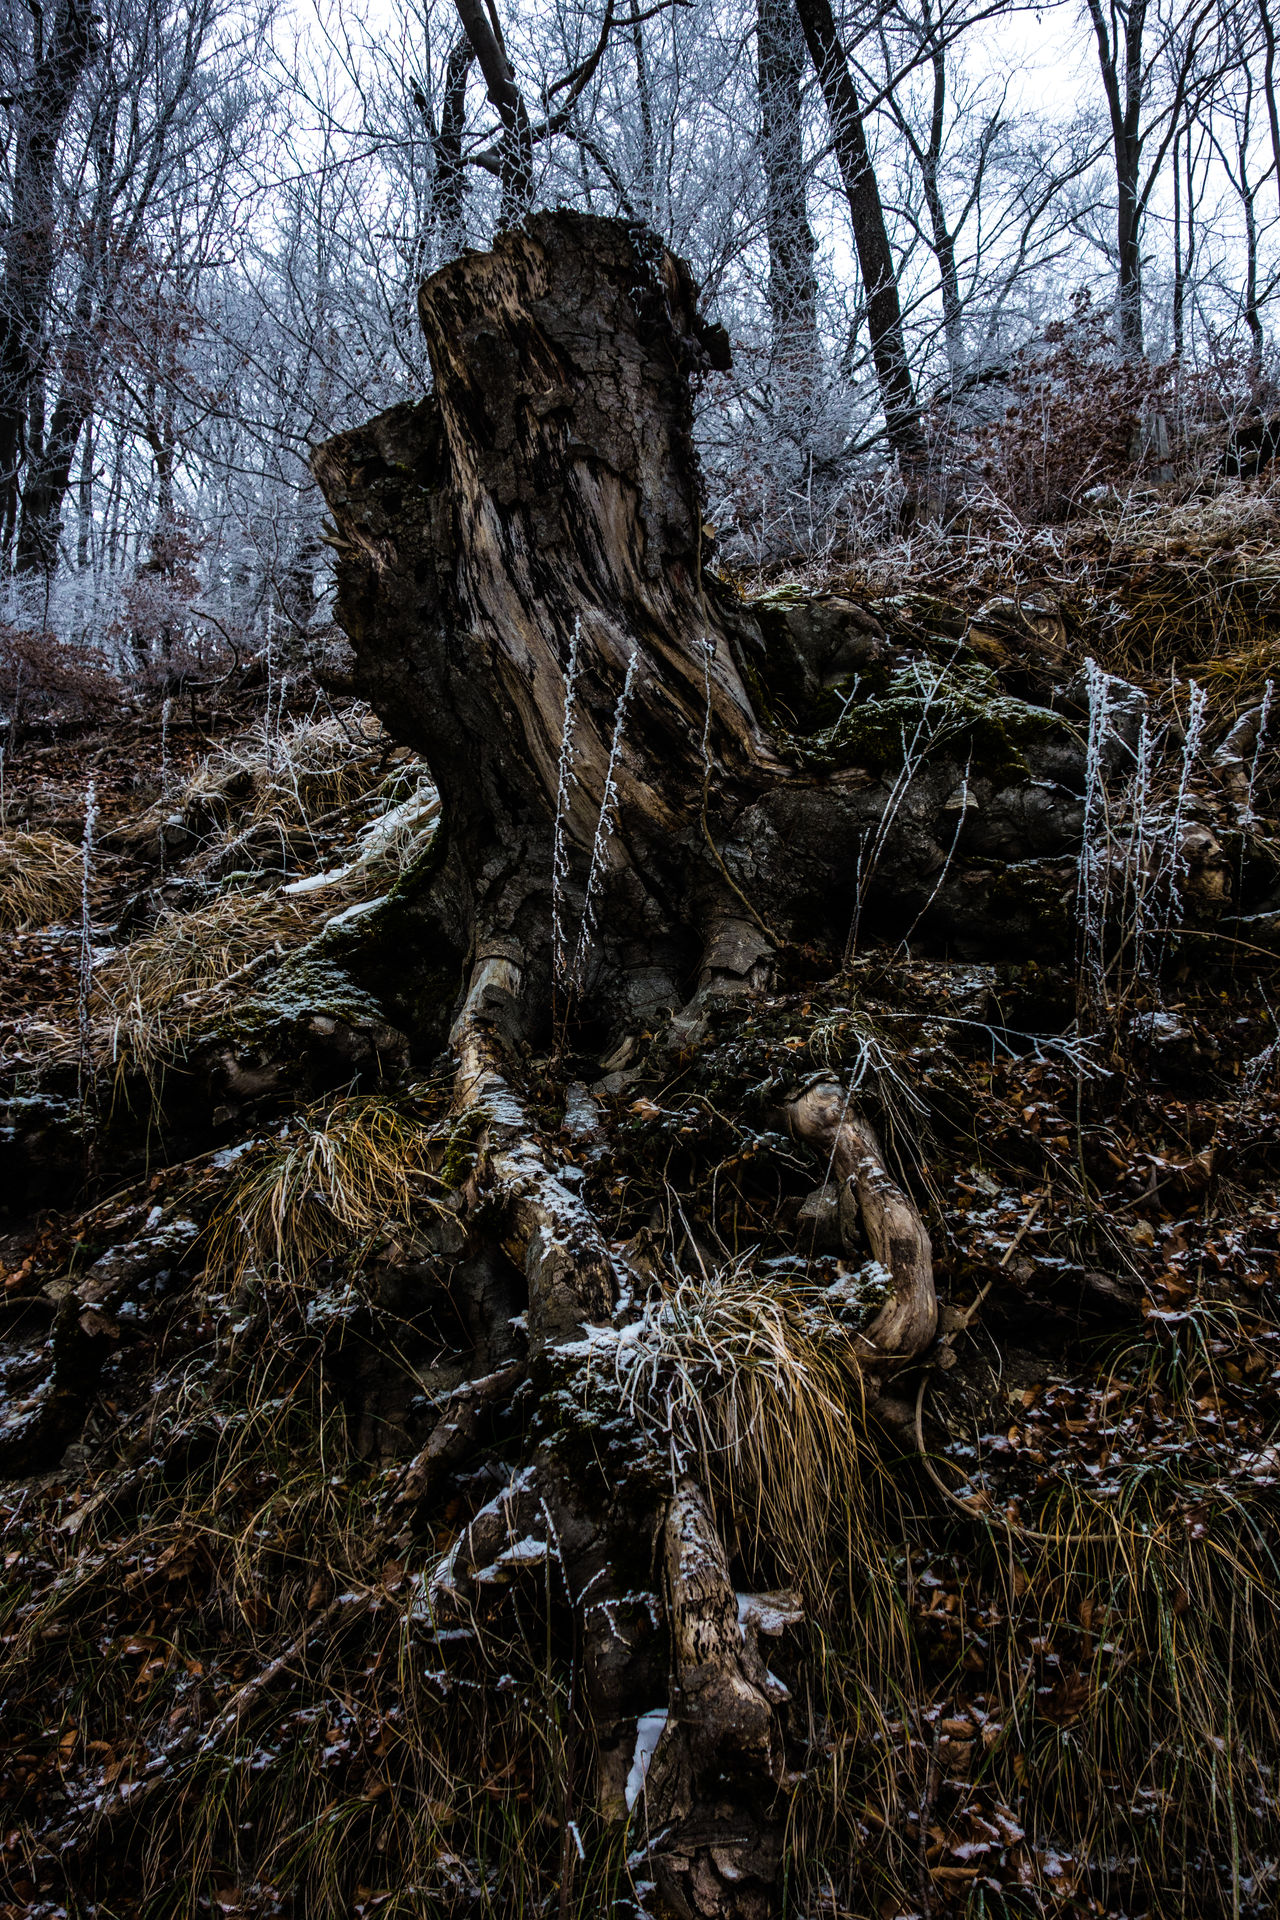 Beauty In Nature Branch Close-up Cold Temperature Day Forest Grass Knaggy Knobbed Knotty Wood Landscape Nature No People Outdoors Sky Snag Stump Tranquility Tree Tree Trunk Winter Trees WoodLand